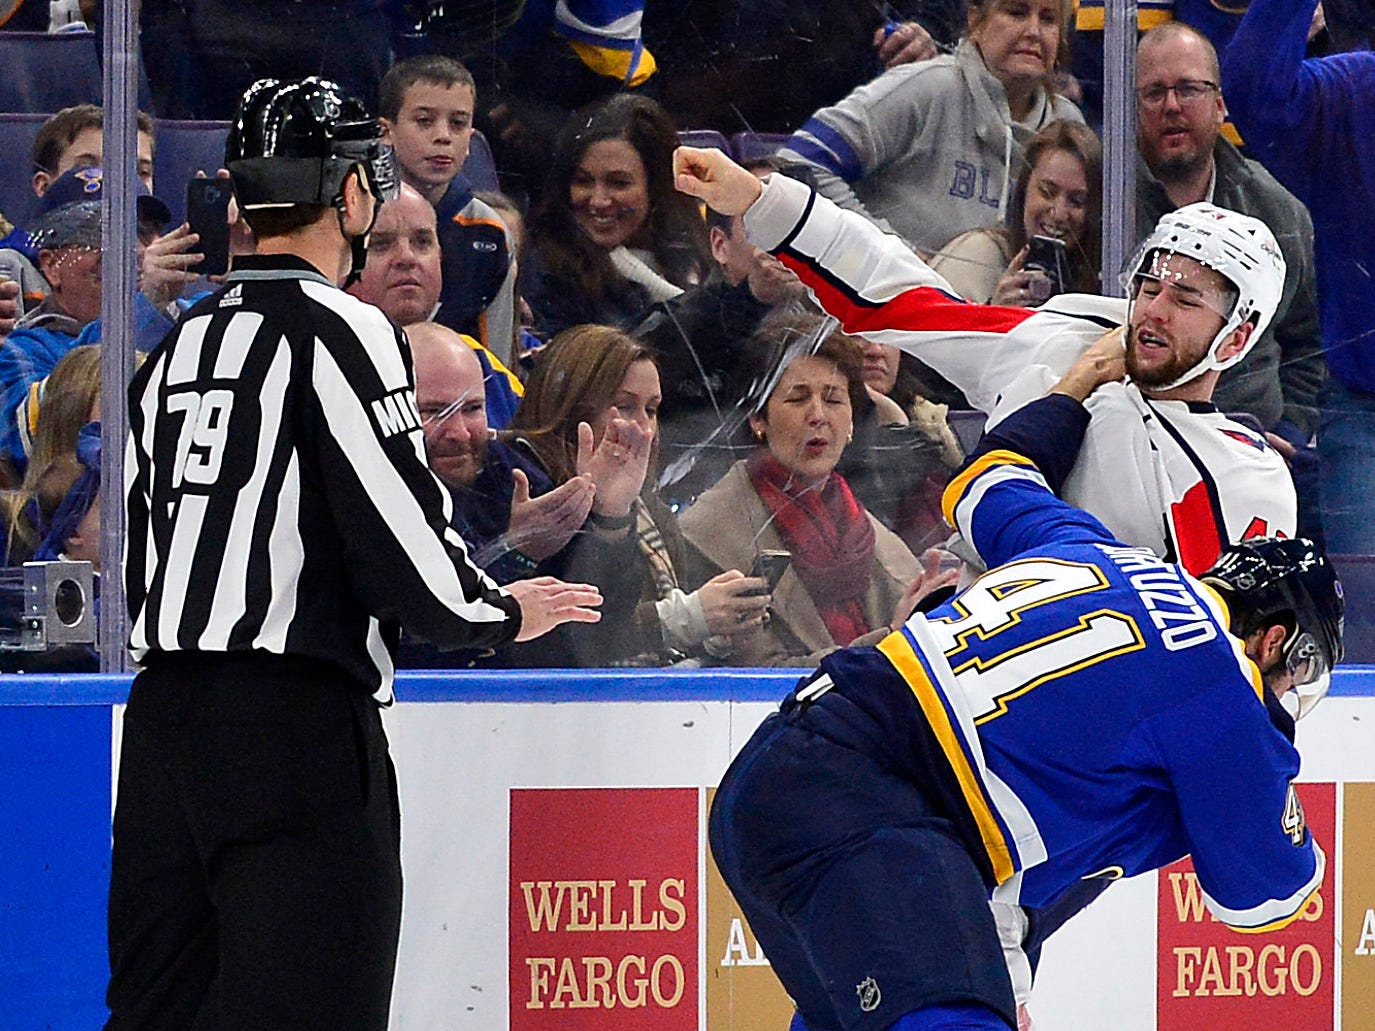 Jan. 3: St. Louis Blues' Robert Bortuzzo vs. Washington Capitals' Tom Wilson